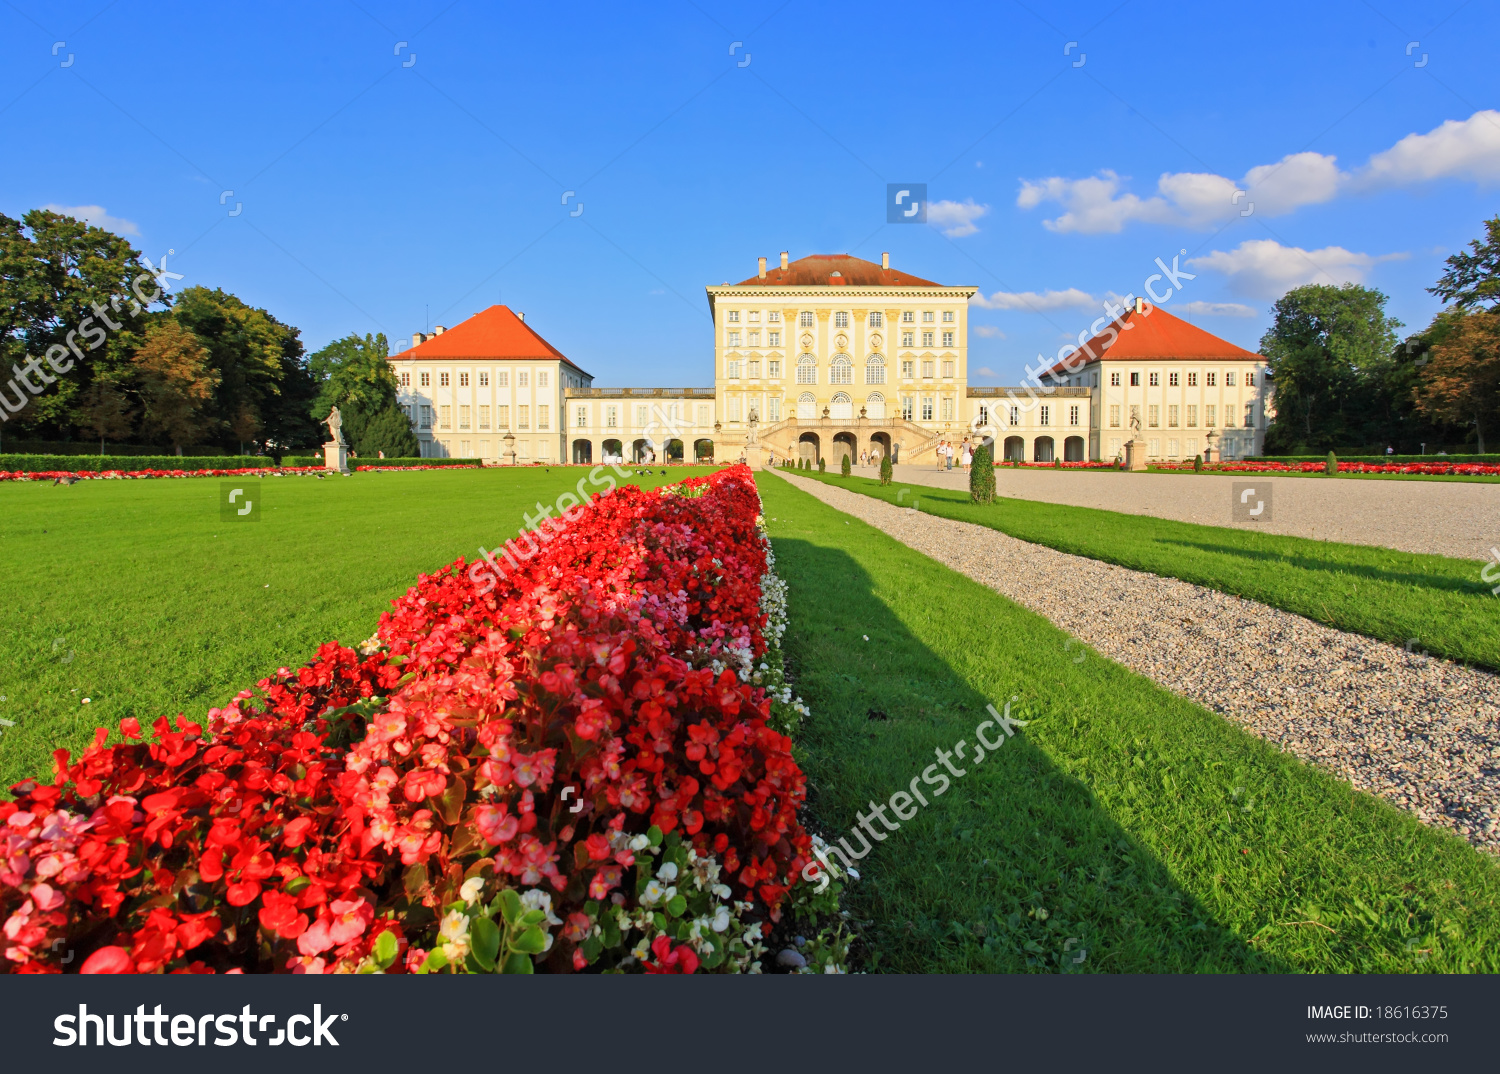 The Royal Garden At The Nymphenburg Palace In Munich Germany Stock.